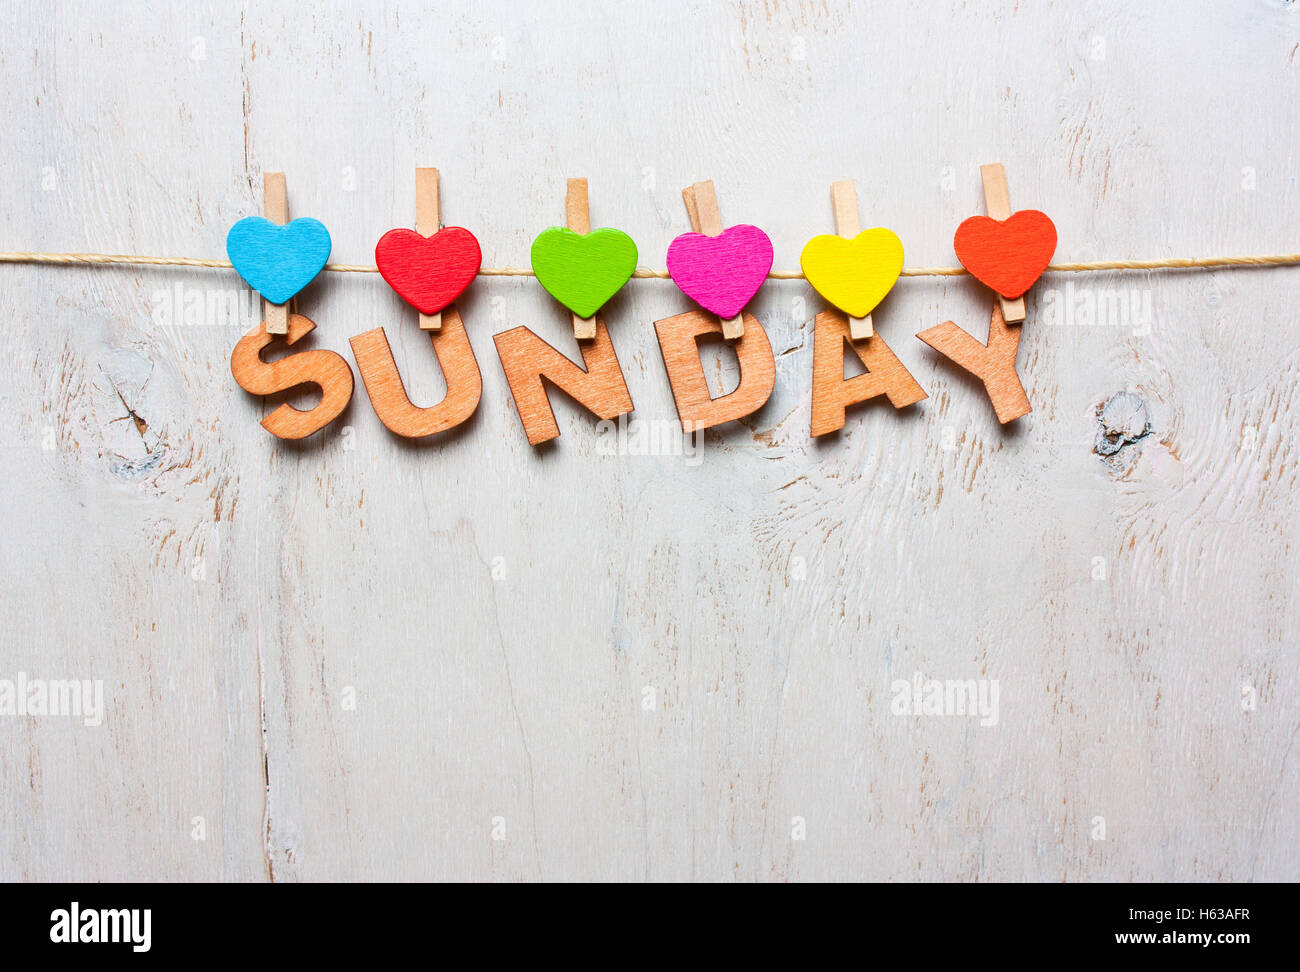 sunday word from wooden letters with colored clothespins on a white wooden background